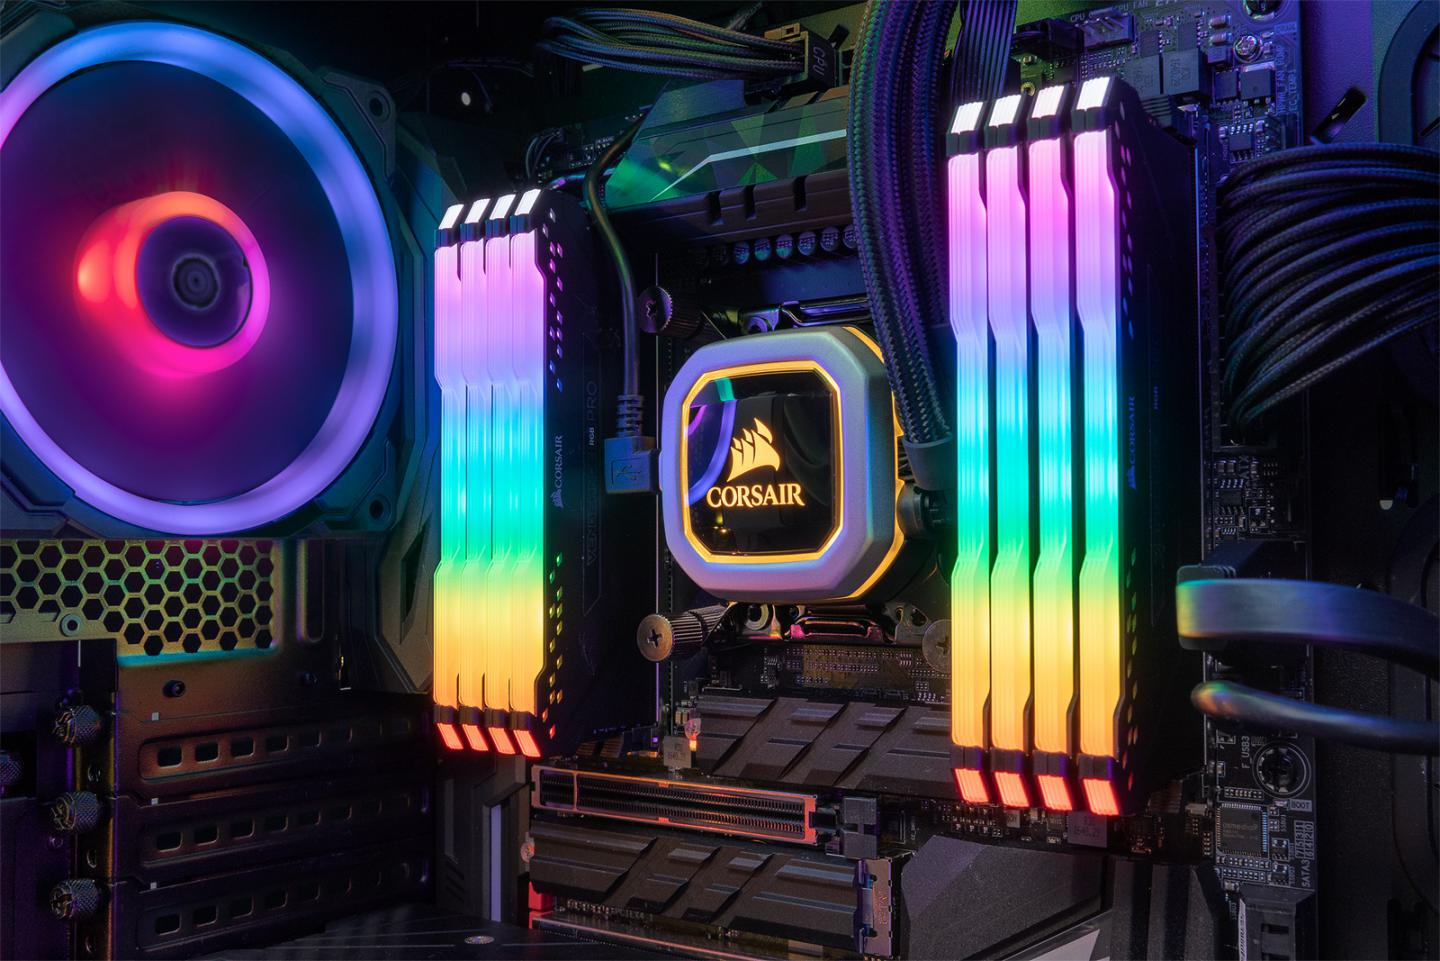 Corsair Launches iCUE, Vengeance RGB PRO DDR4 Memory and